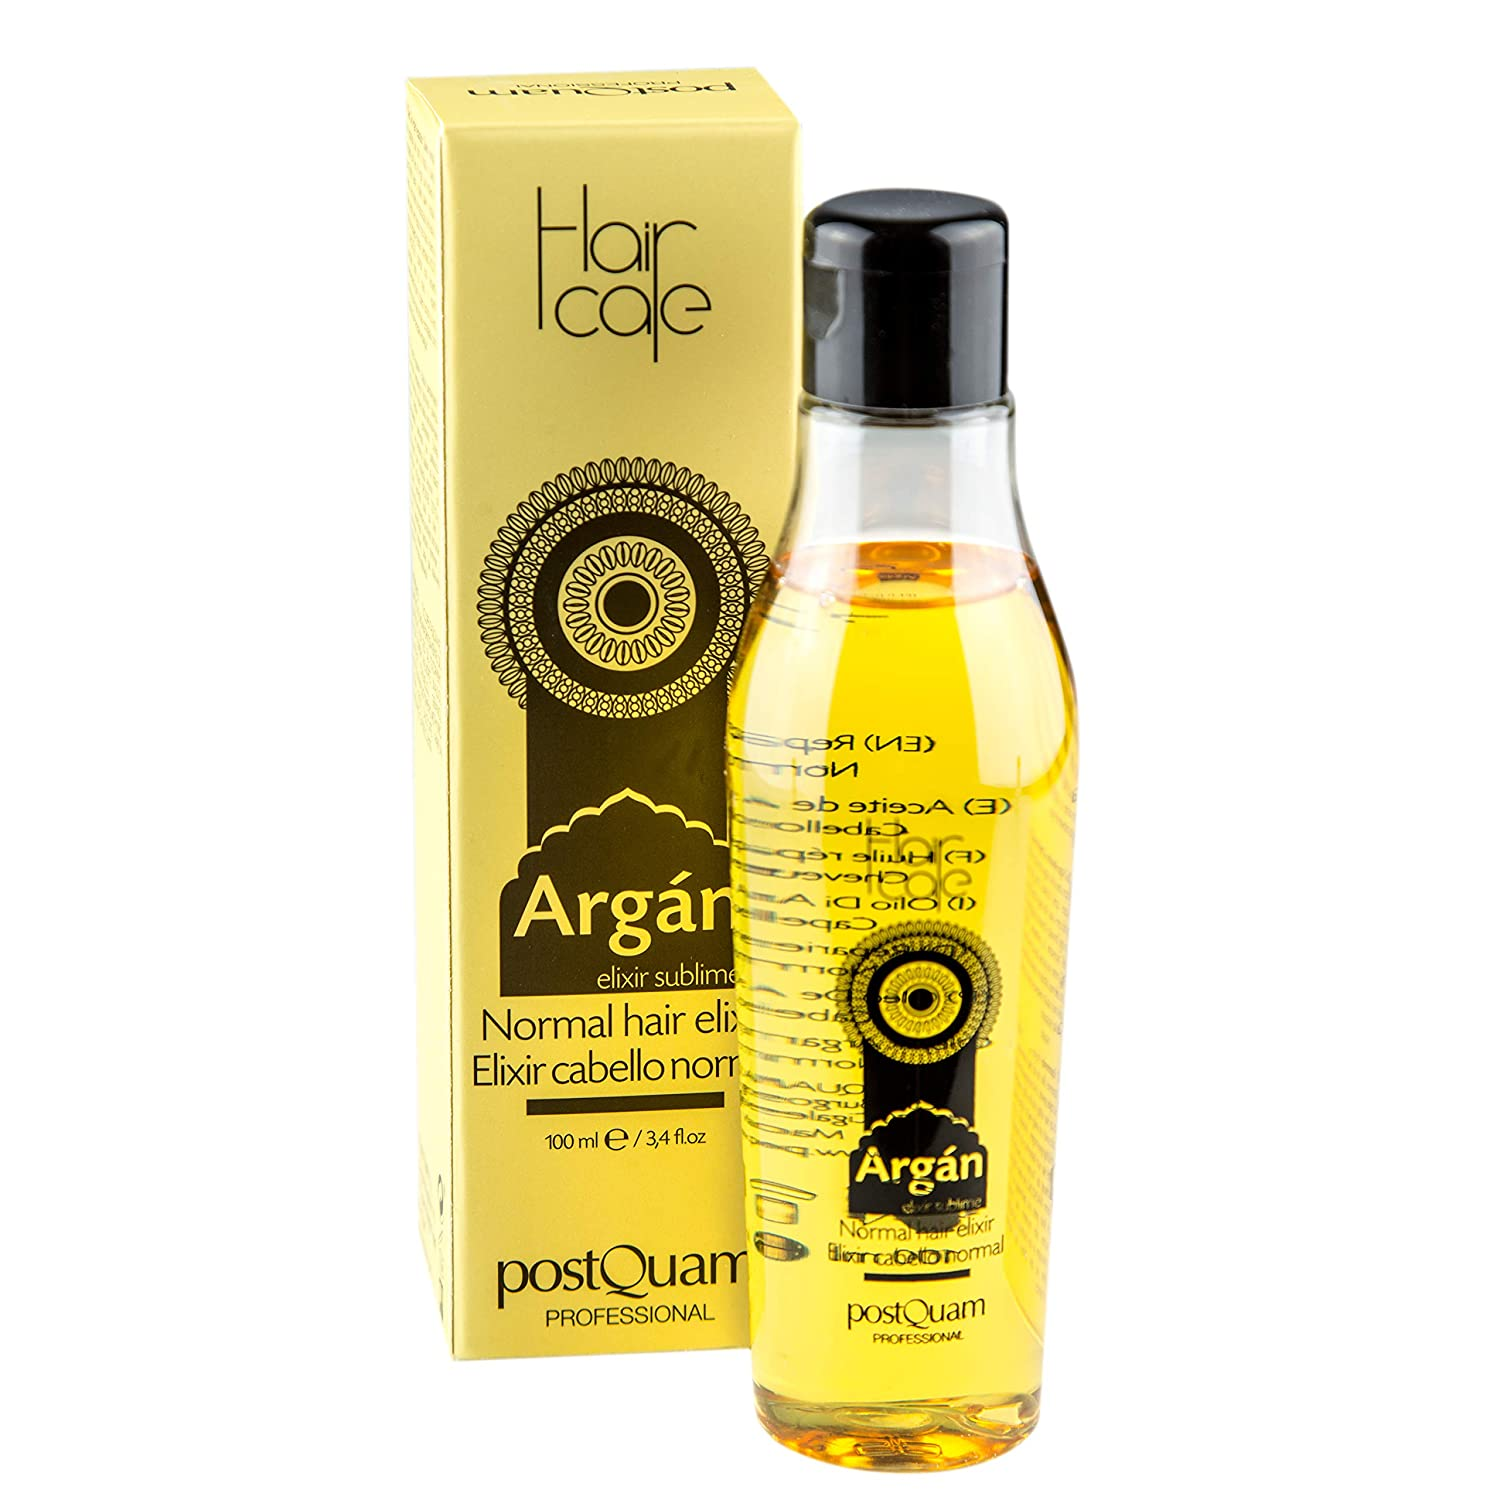 Postquam - Hair Care | Aceite de Argan Sublime para Cabellos Frágil - 100ml: Amazon.es: Belleza